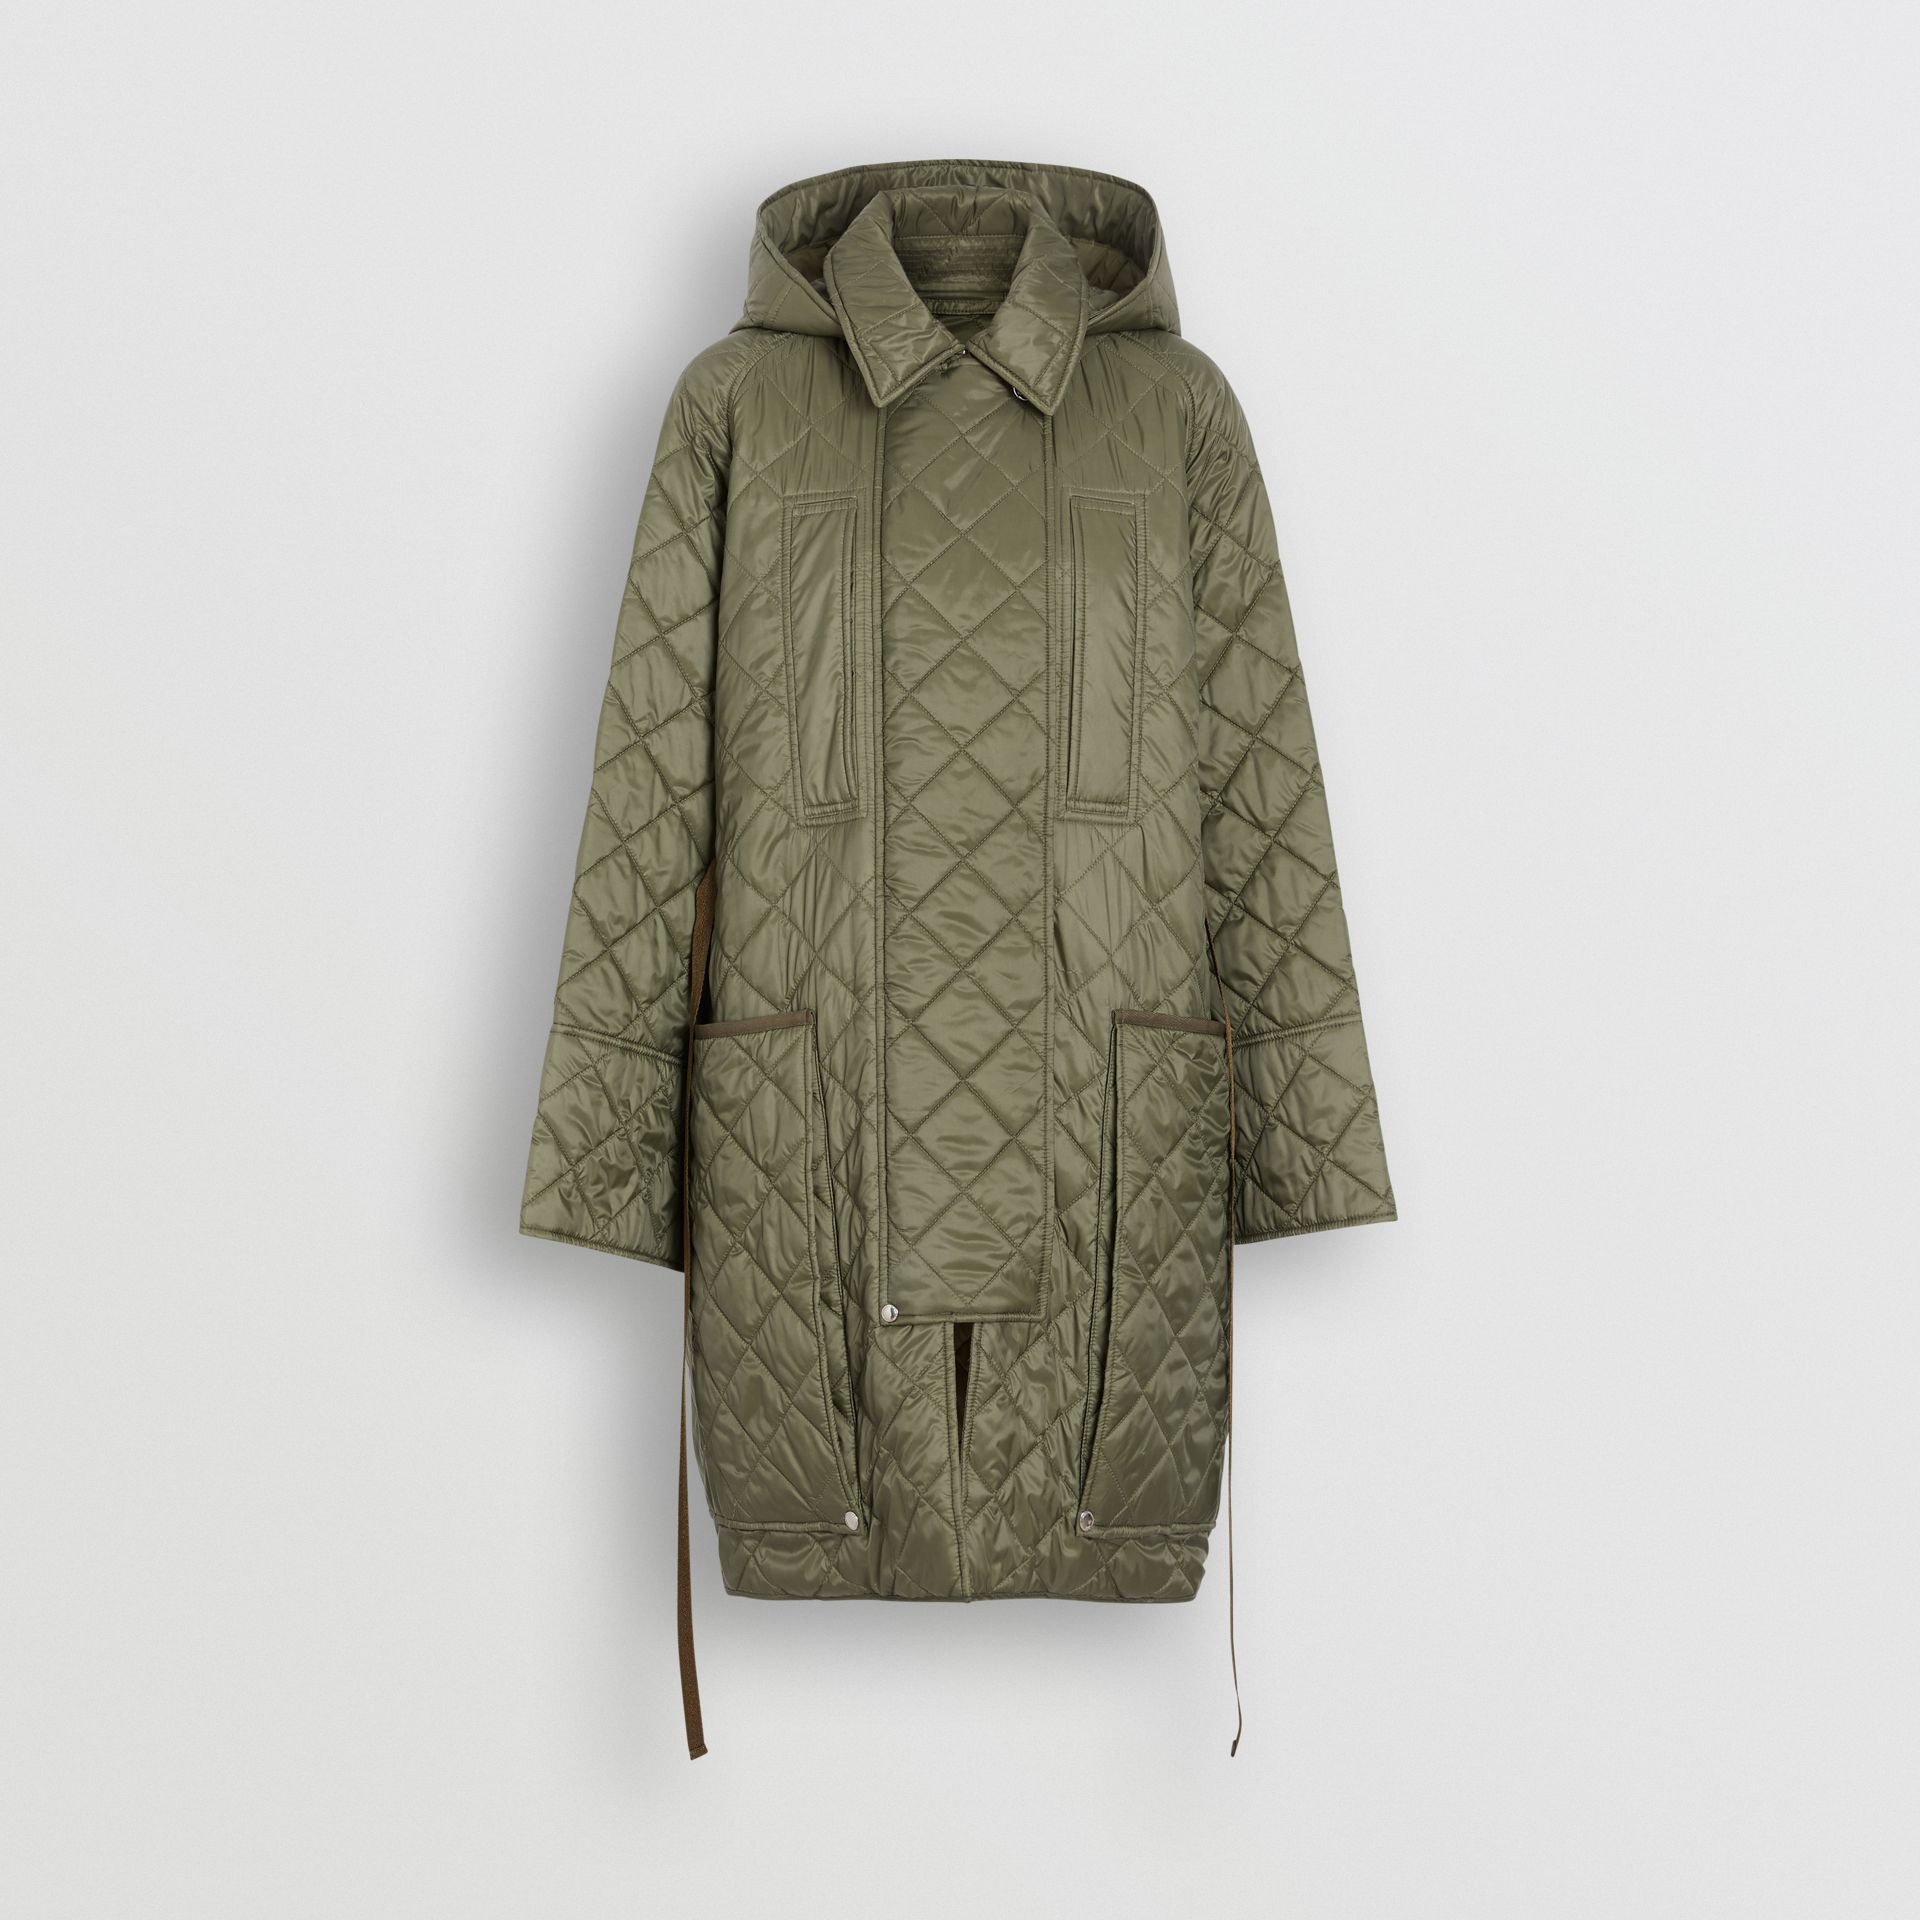 Lightweight Diamond Quilted Hooded Coat in Cadet Green - Women | Burberry - gallery image 2